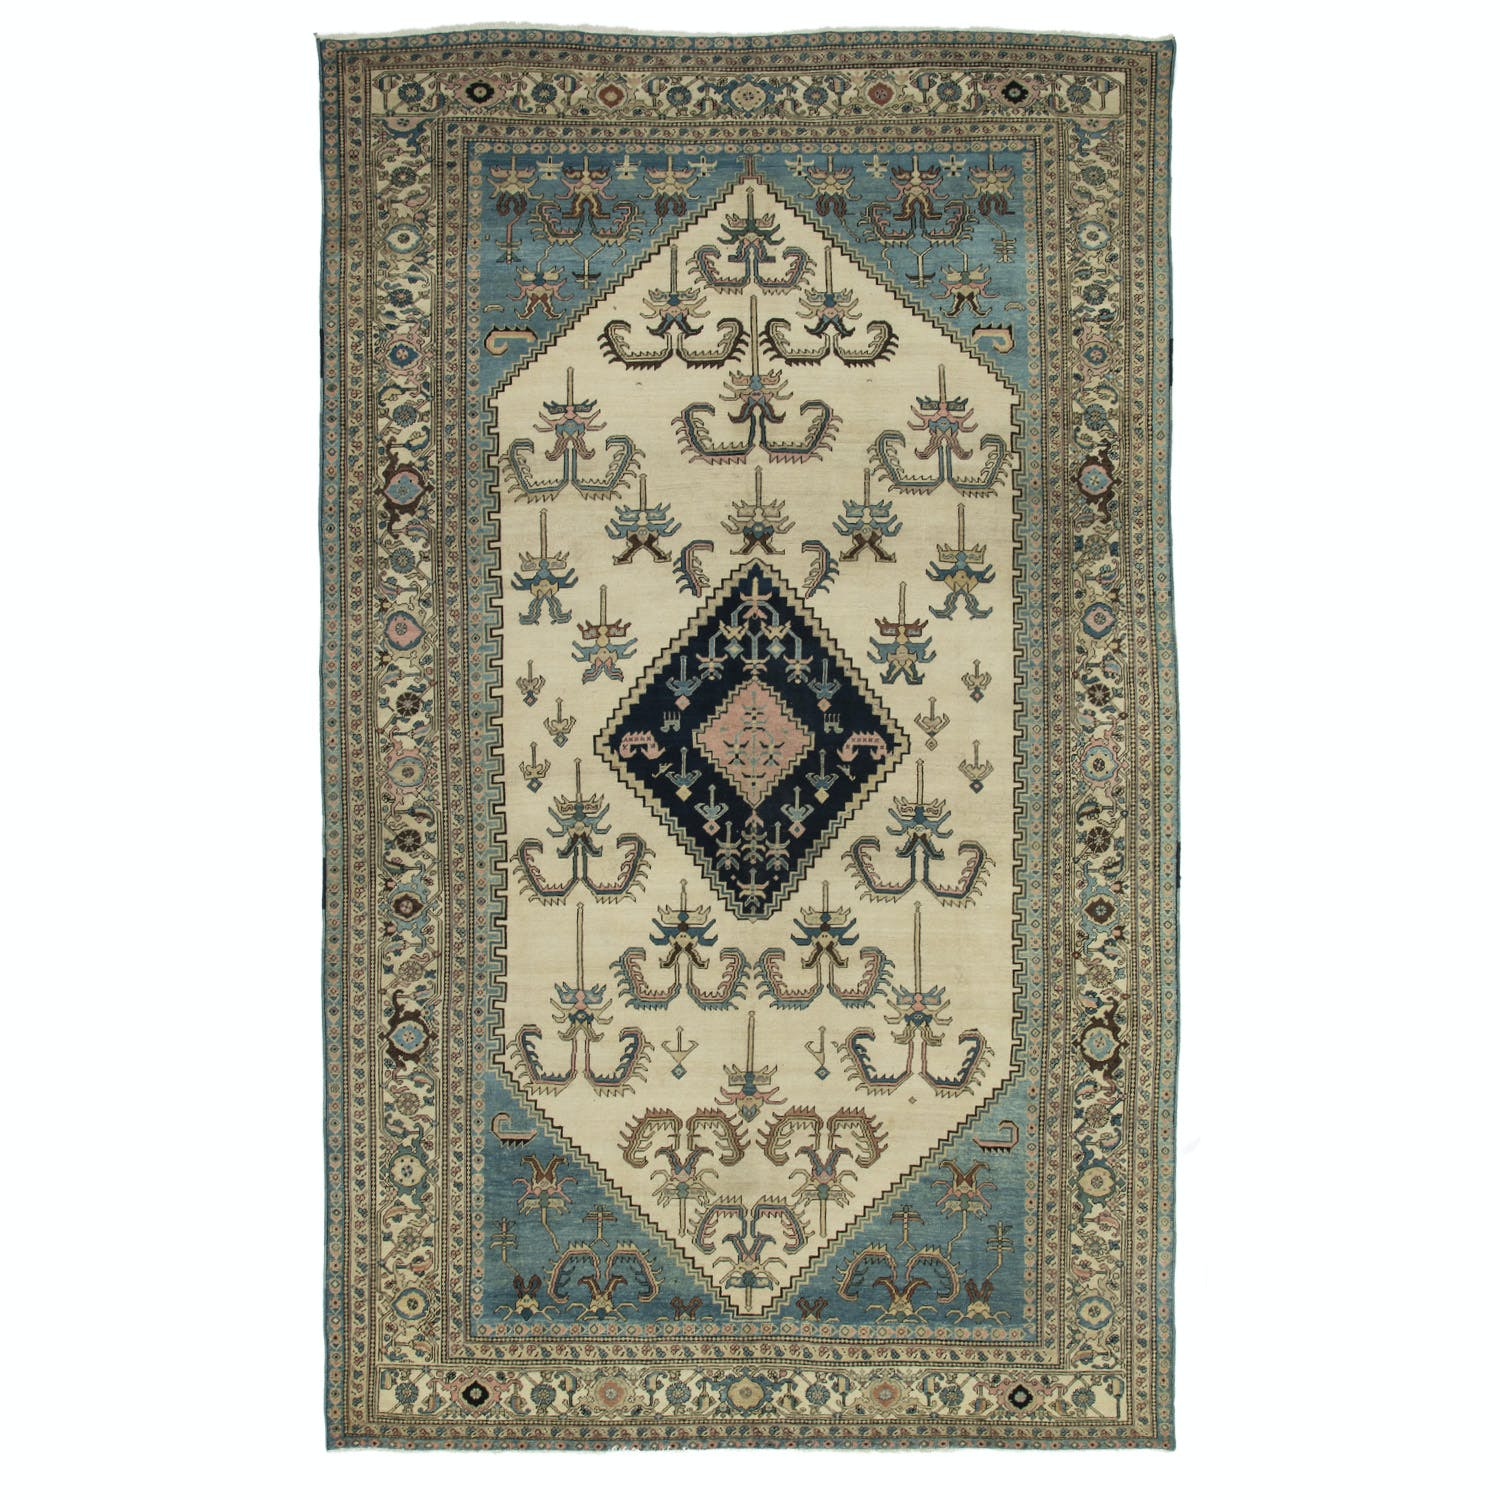 Product Image - Antique Bakhshaish Rug-9'x14'